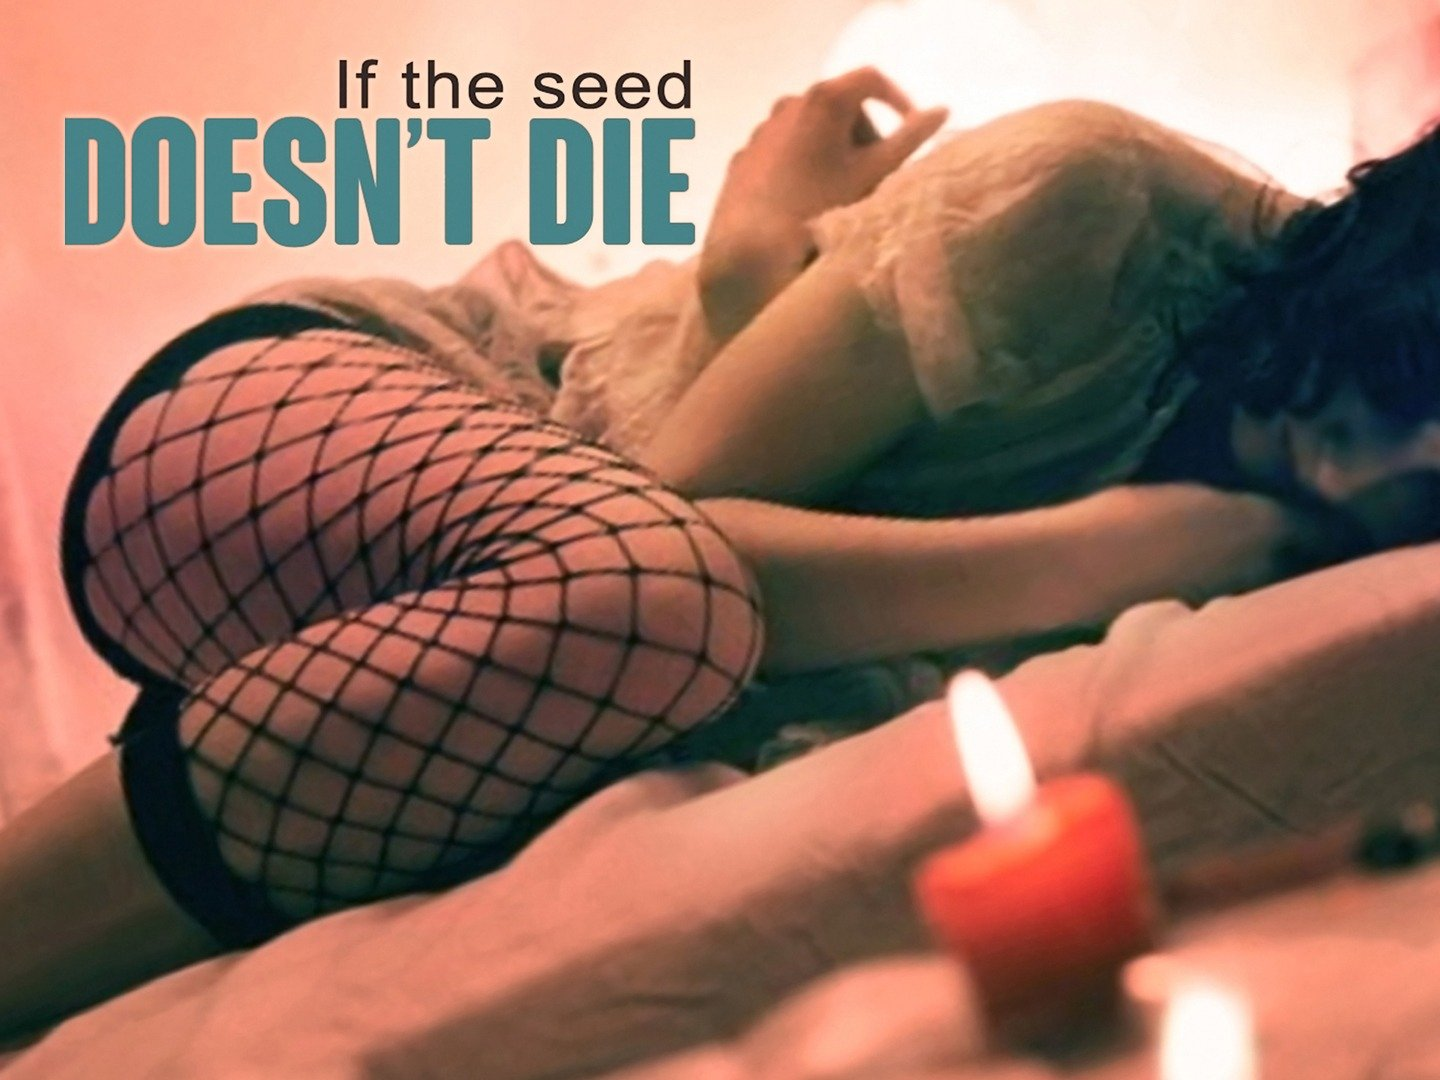 If The Seed Doesn't Die (Daca bobul nu moare)